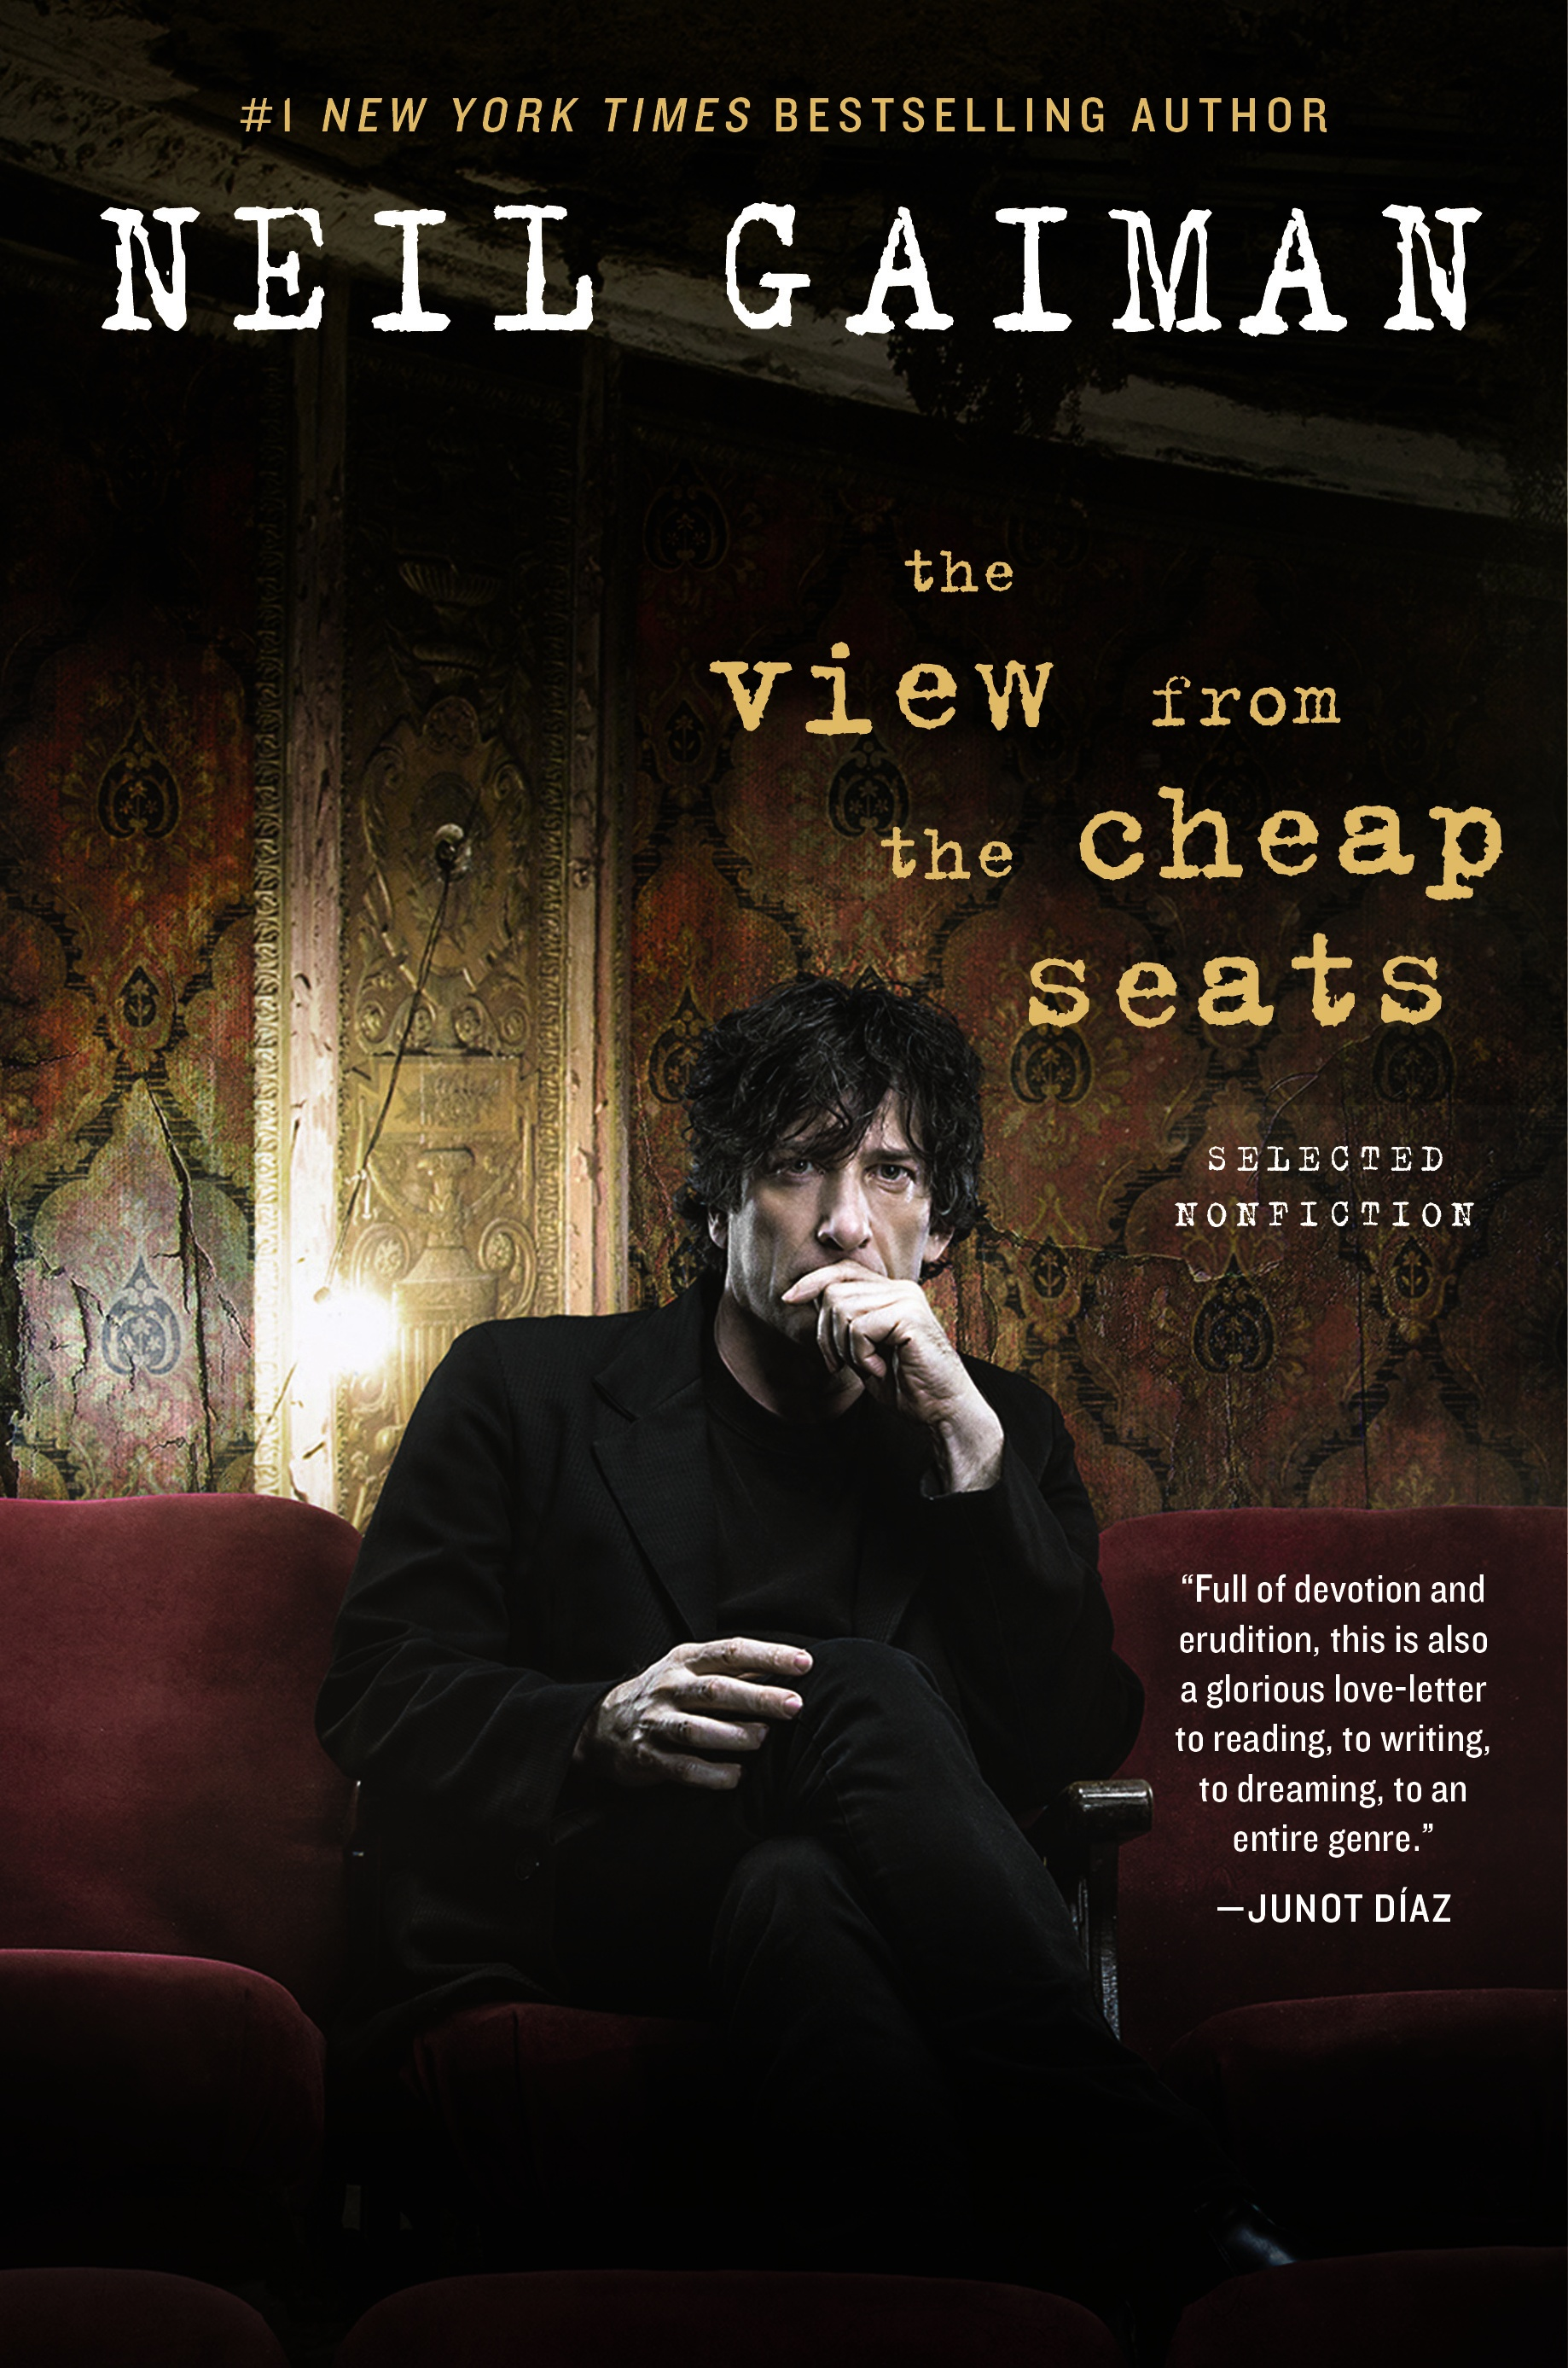 Friday Reads: The View From the Cheap Seats by Neil Gaiman